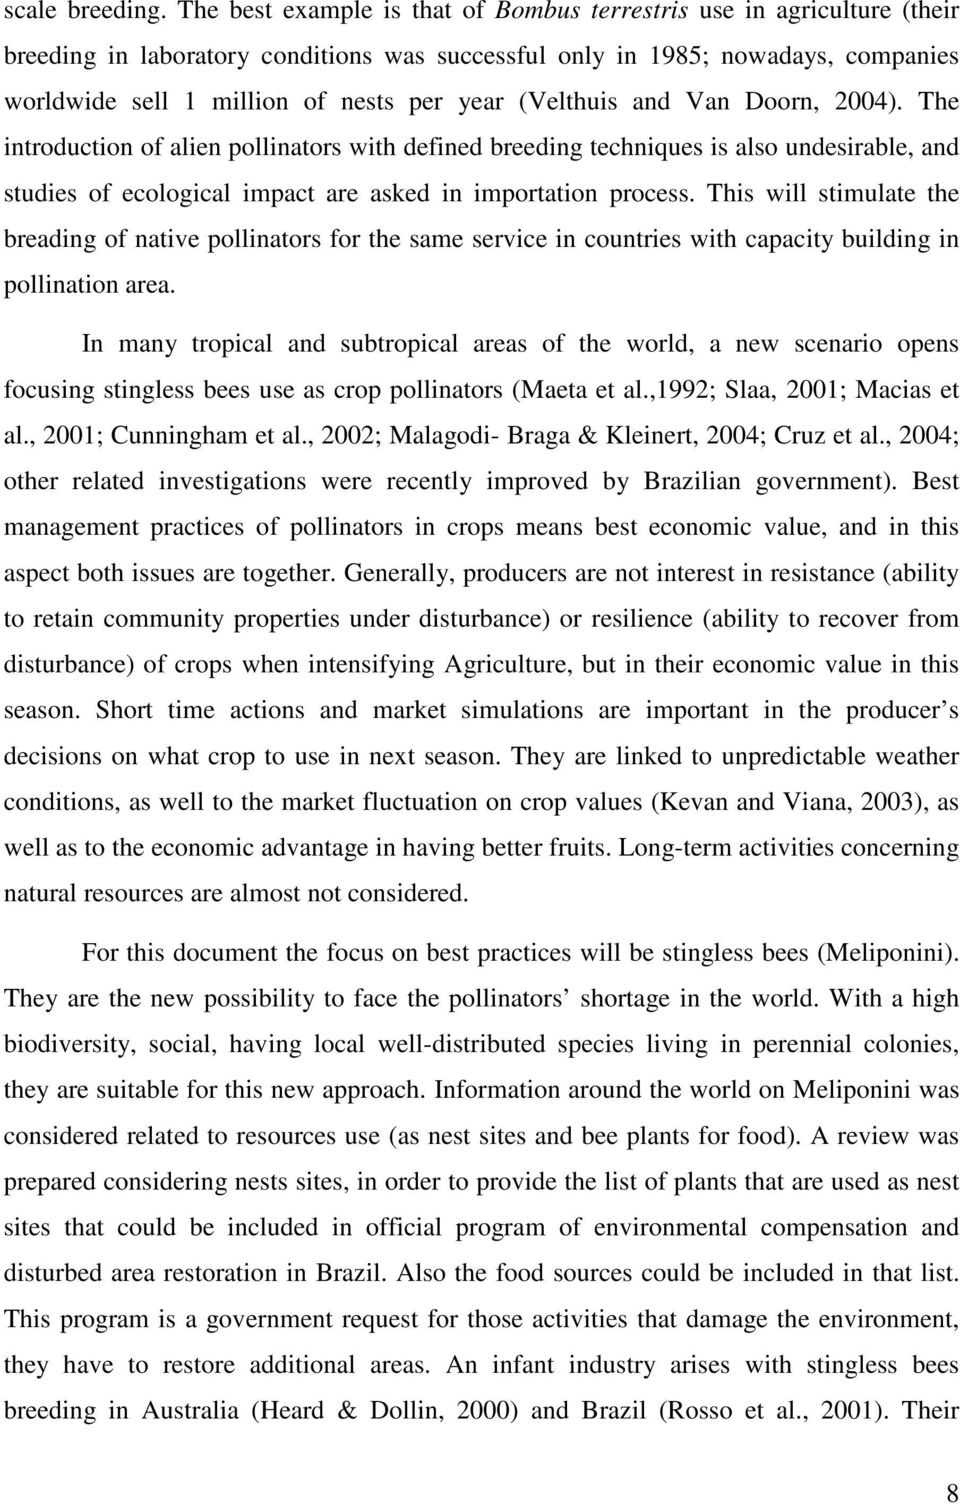 (Velthuis and Van Doorn, 2004). The introduction of alien pollinators with defined breeding techniques is also undesirable, and studies of ecological impact are asked in importation process.